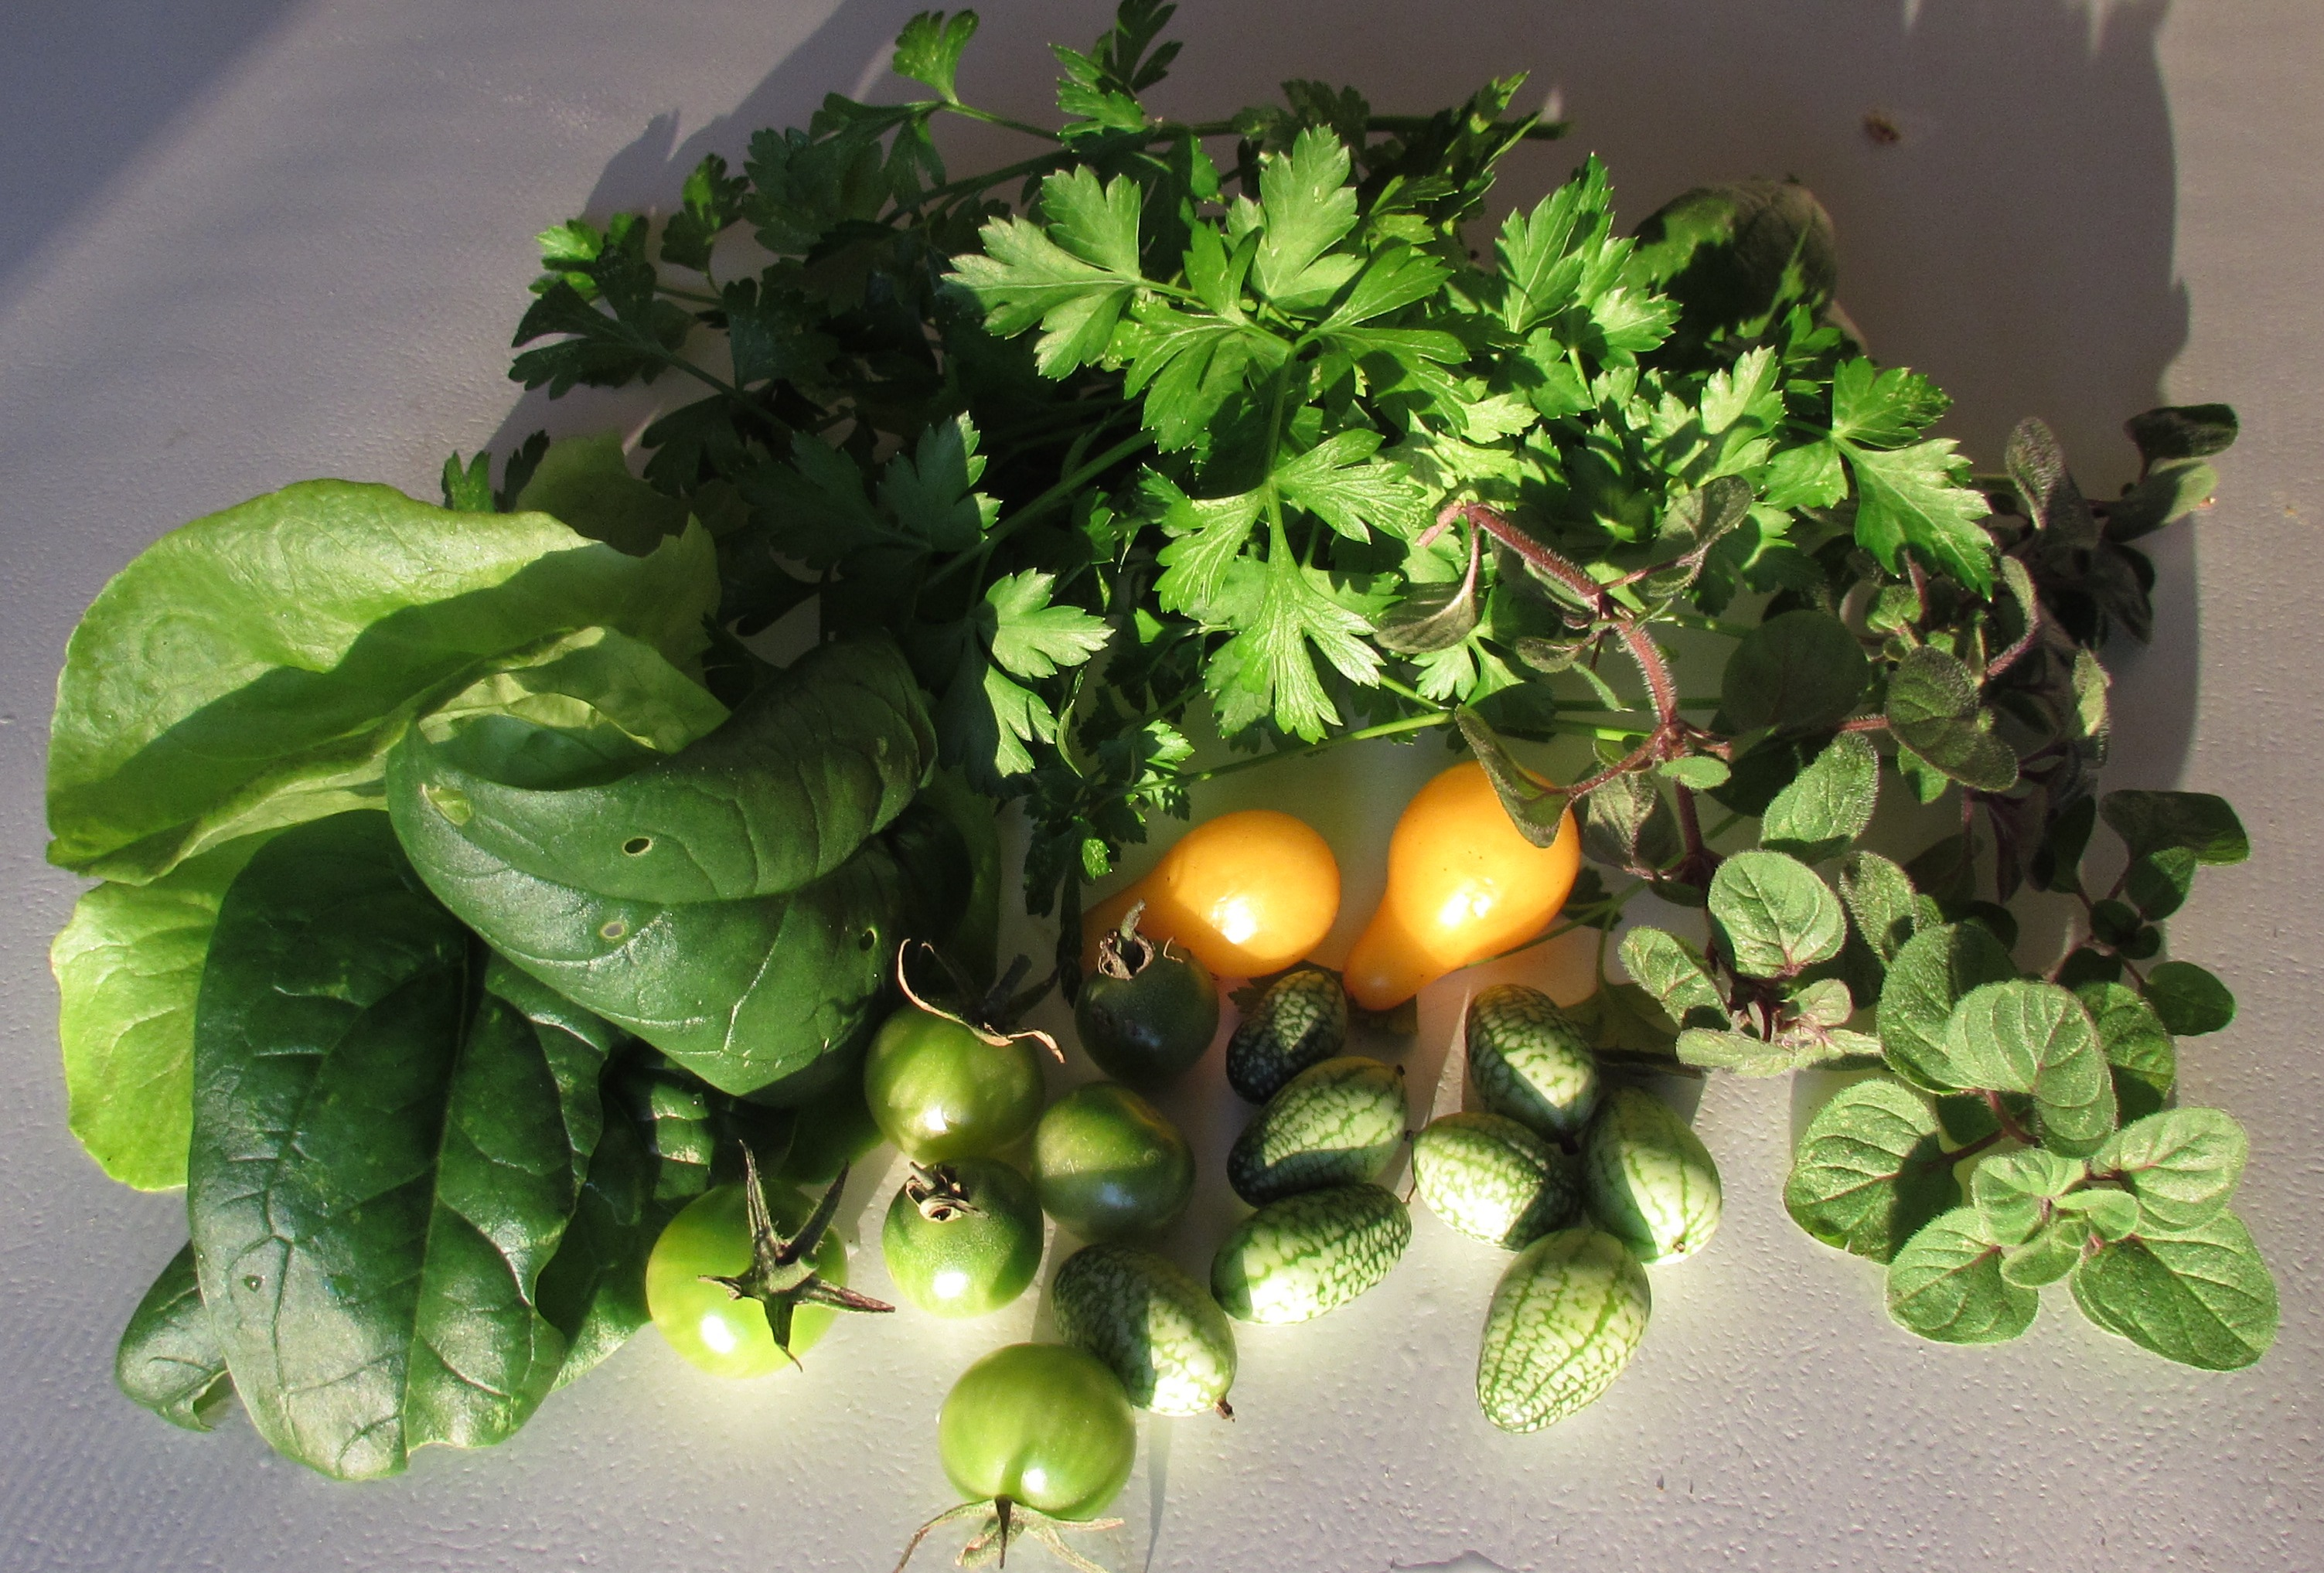 Flagrant Leftovers Farming Philly How To Pick Parsley Leaves From Plant How To Harvest Parsley Without Killing Plant Sourmexican Gherkins December Harvest December Cherry Tomatoes houzz-02 How To Harvest Parsley